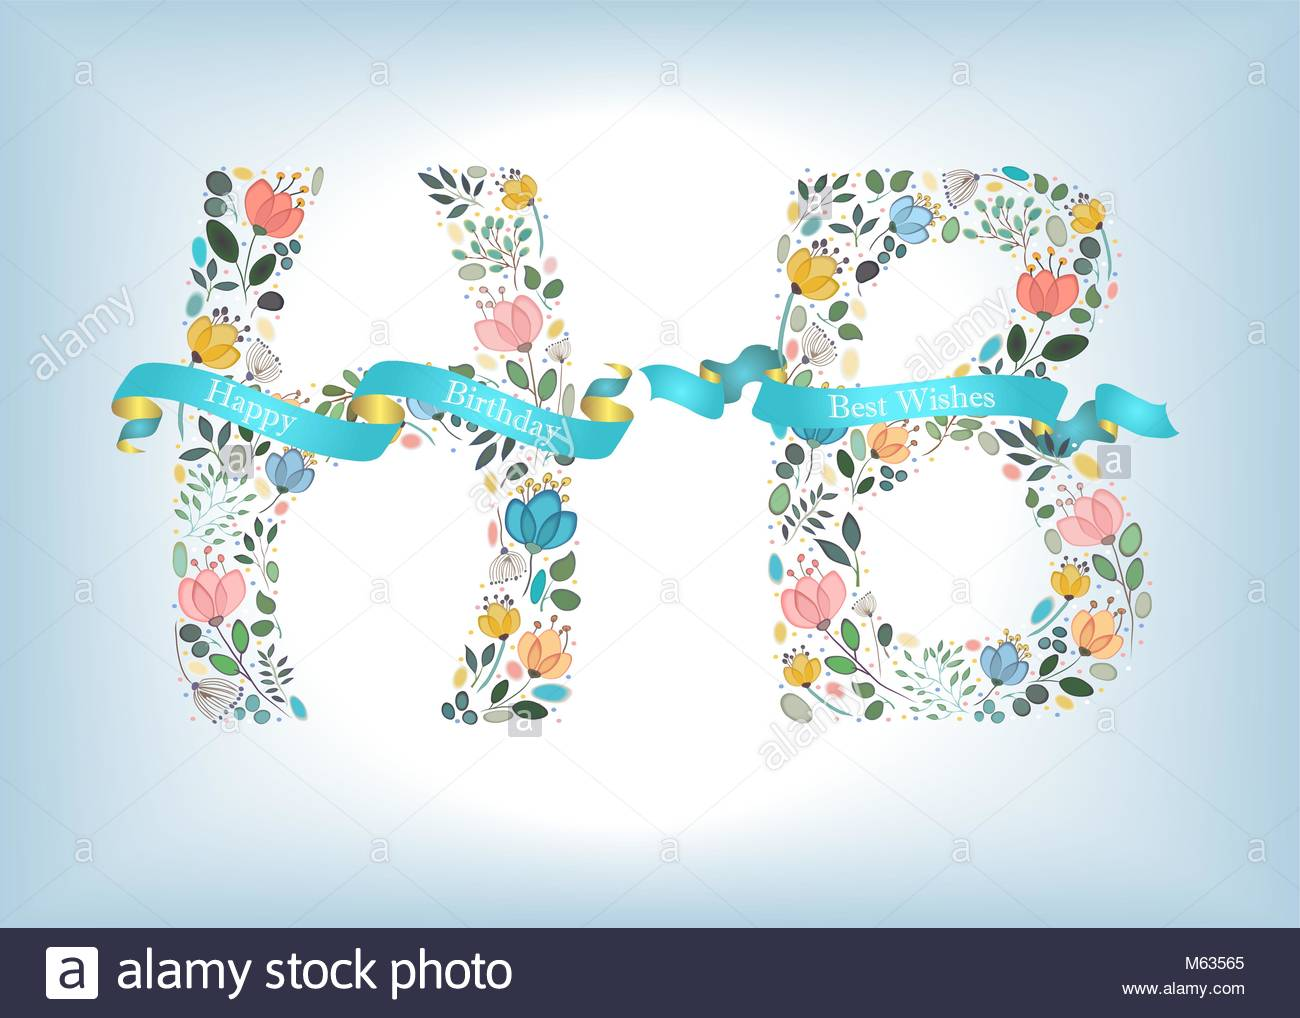 happy birthday floral letters h and b watercolor graceful flowers and plants blue ribbons with golden backs and white texts blue background vecto